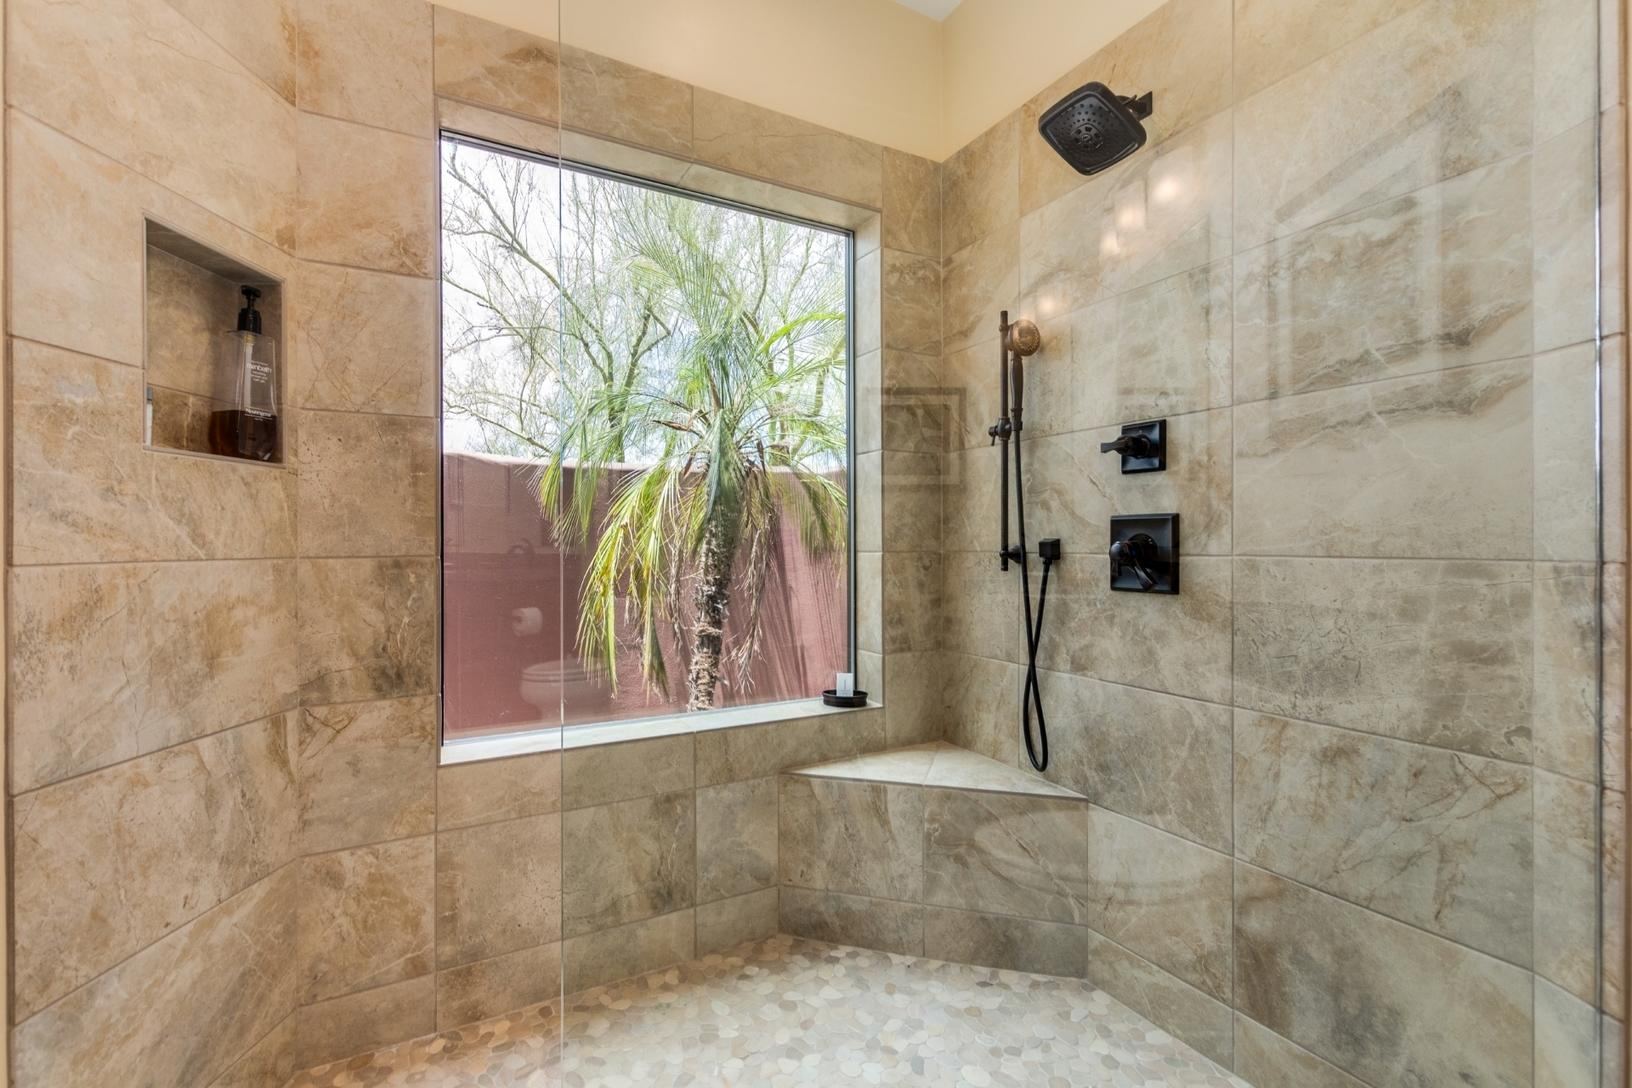 North Scottsdale Bathroom Remodeling 85266